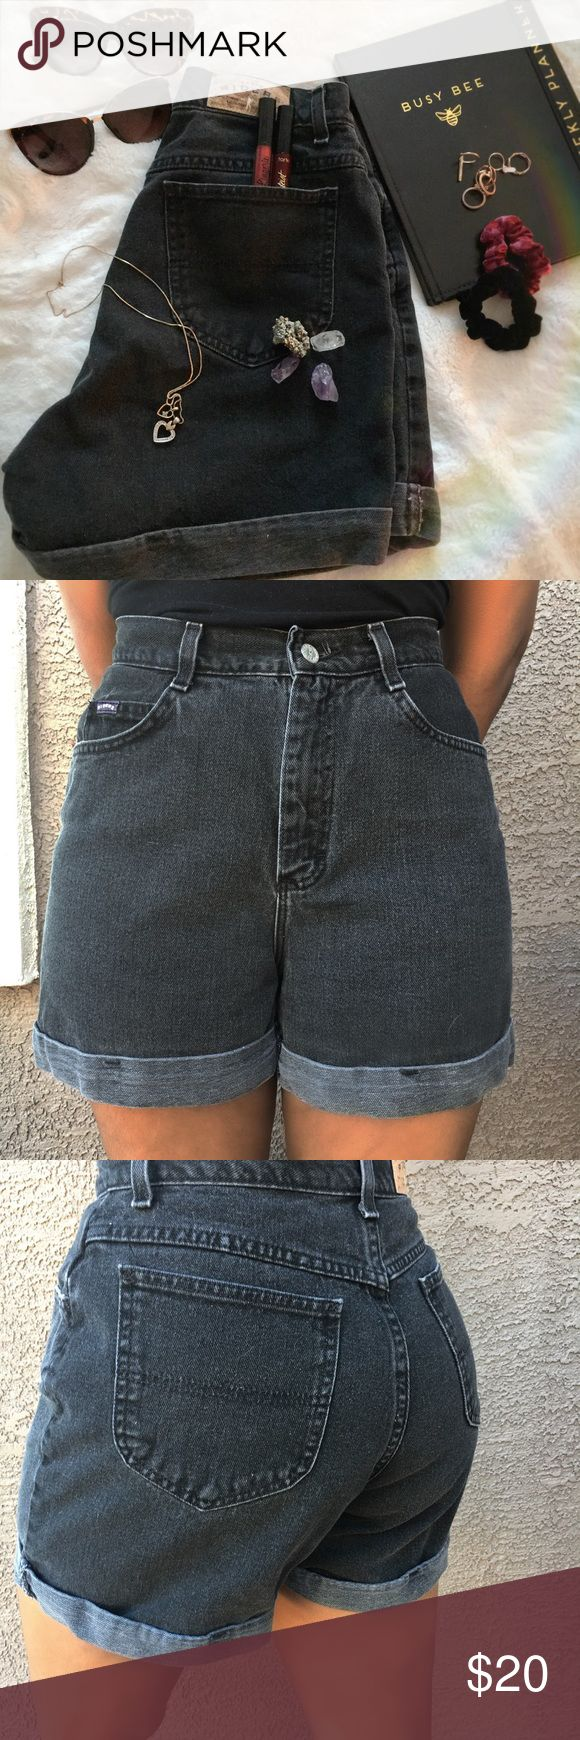 🖤Black high waisted jean shorts🖤 Super cute and comfy high waisted black denim shorts with deep pockets in front and back. Really great condition and only worn for pictures. Would be super cute with tights this fall 🍂🍁🎃 Riders by Lee Shorts Jean Shorts